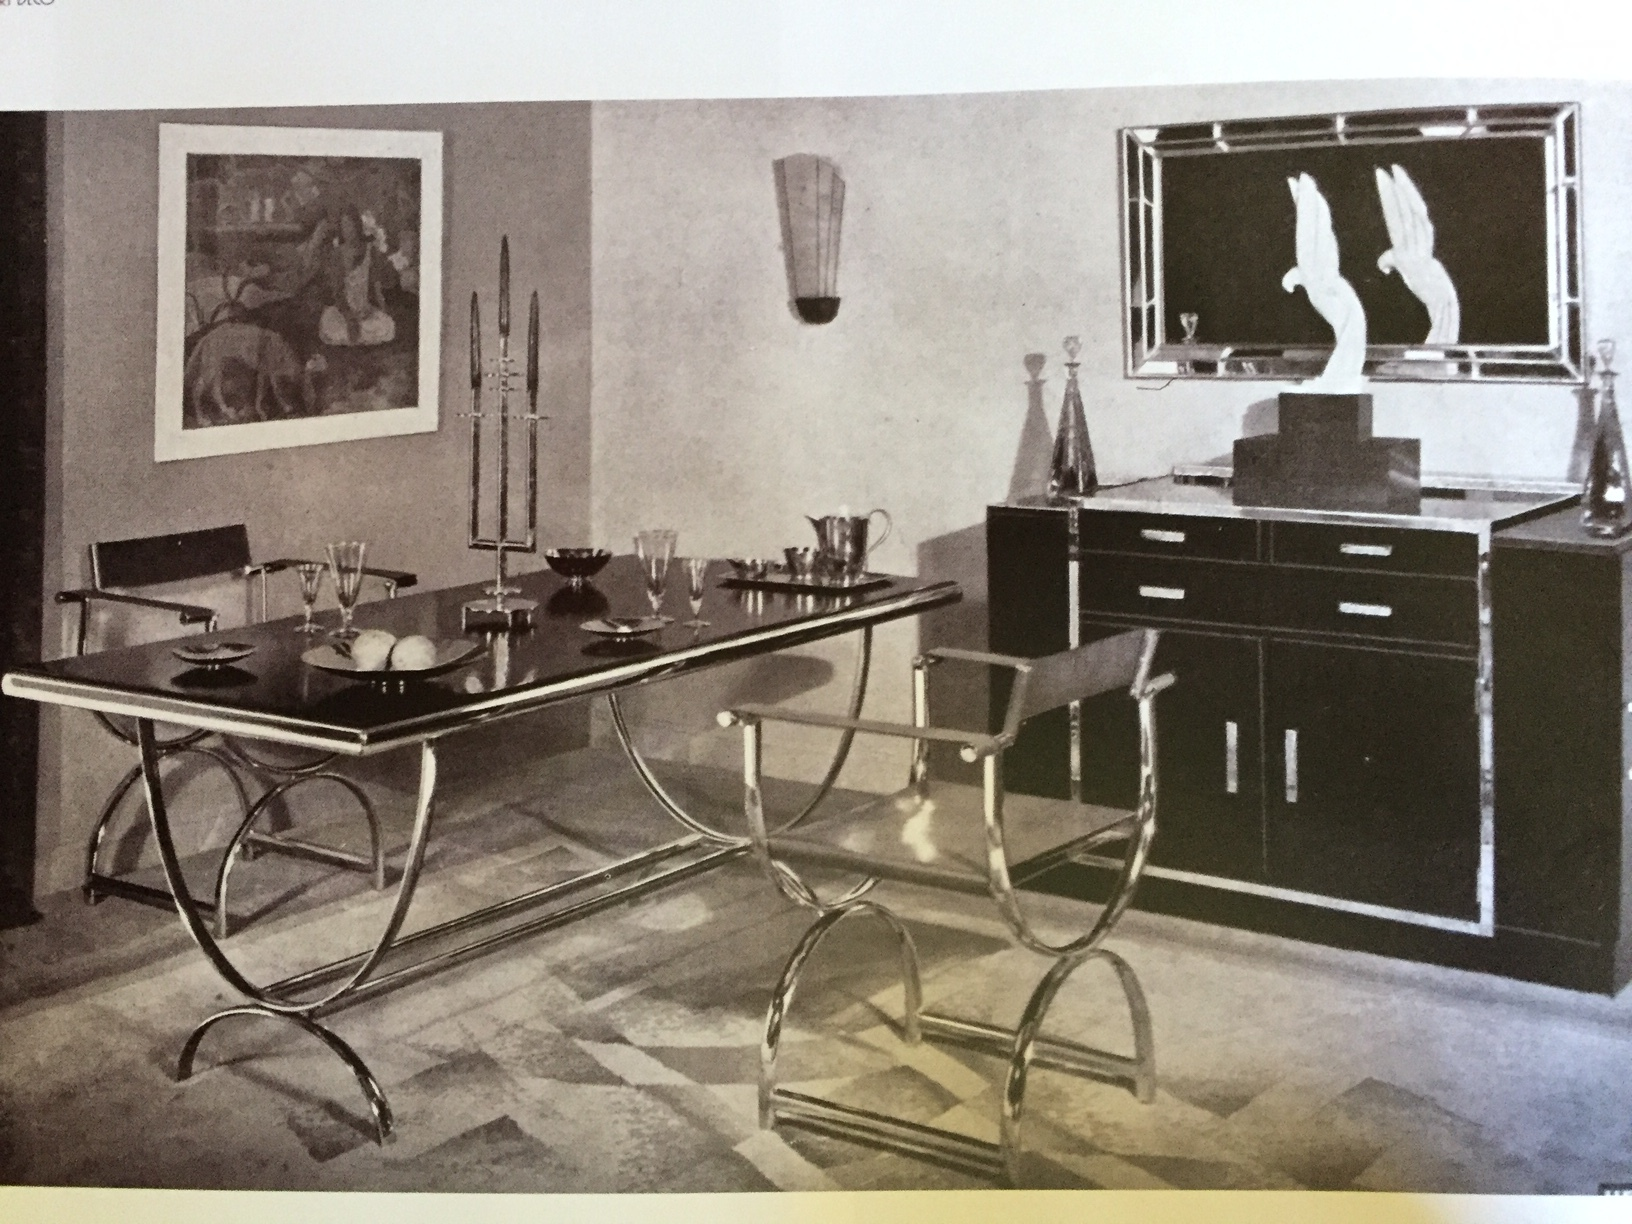 Dining Room with chromed furniture, 1925